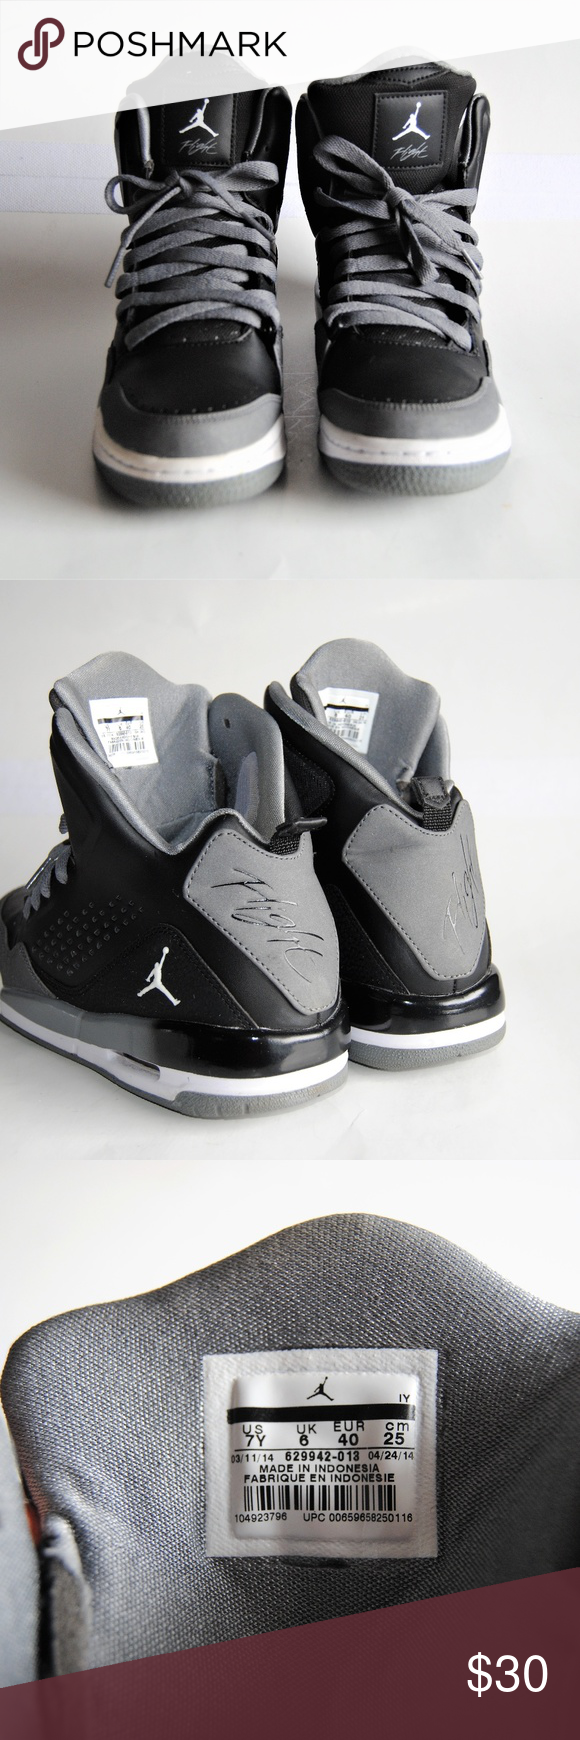 best website 38a47 6bf7b Nike Air Jordan Flight SC-3 Boys HighTop Sneakers Nike Air Jordan SC-3